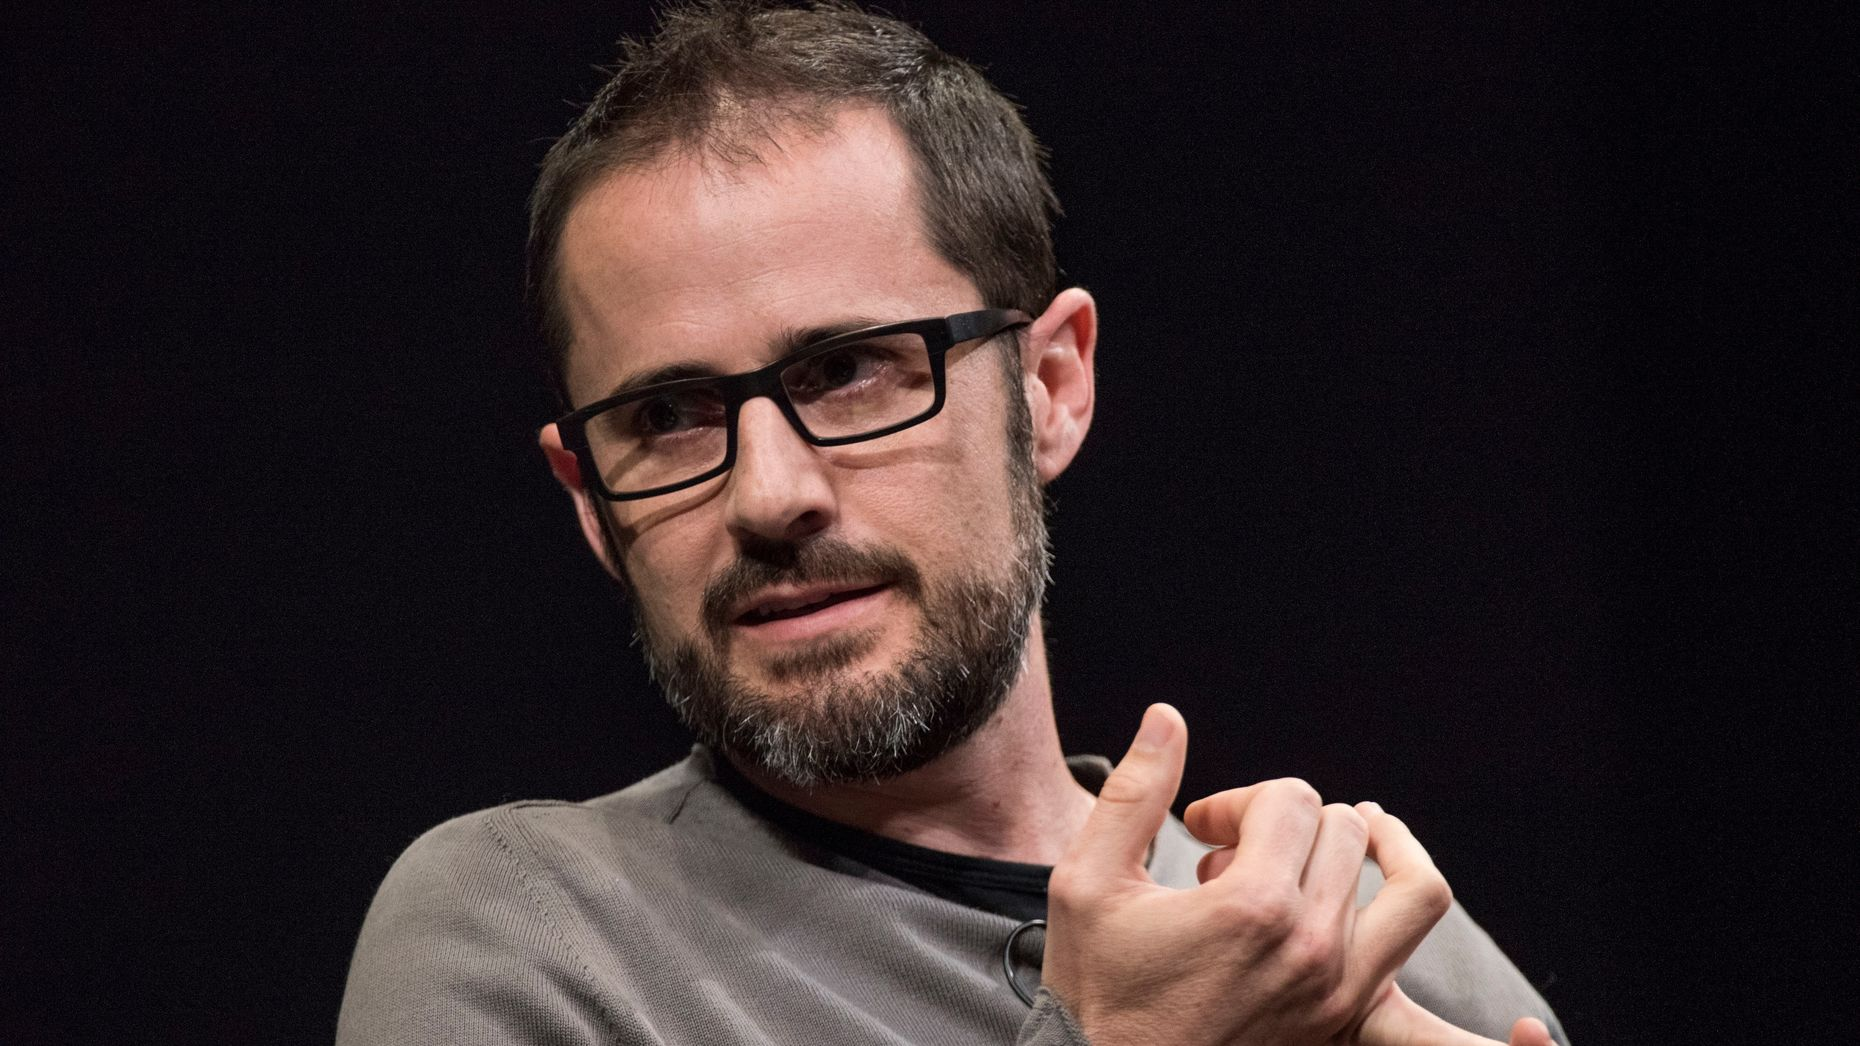 Medium CEO Ev Williams. Photo by Bloomberg.